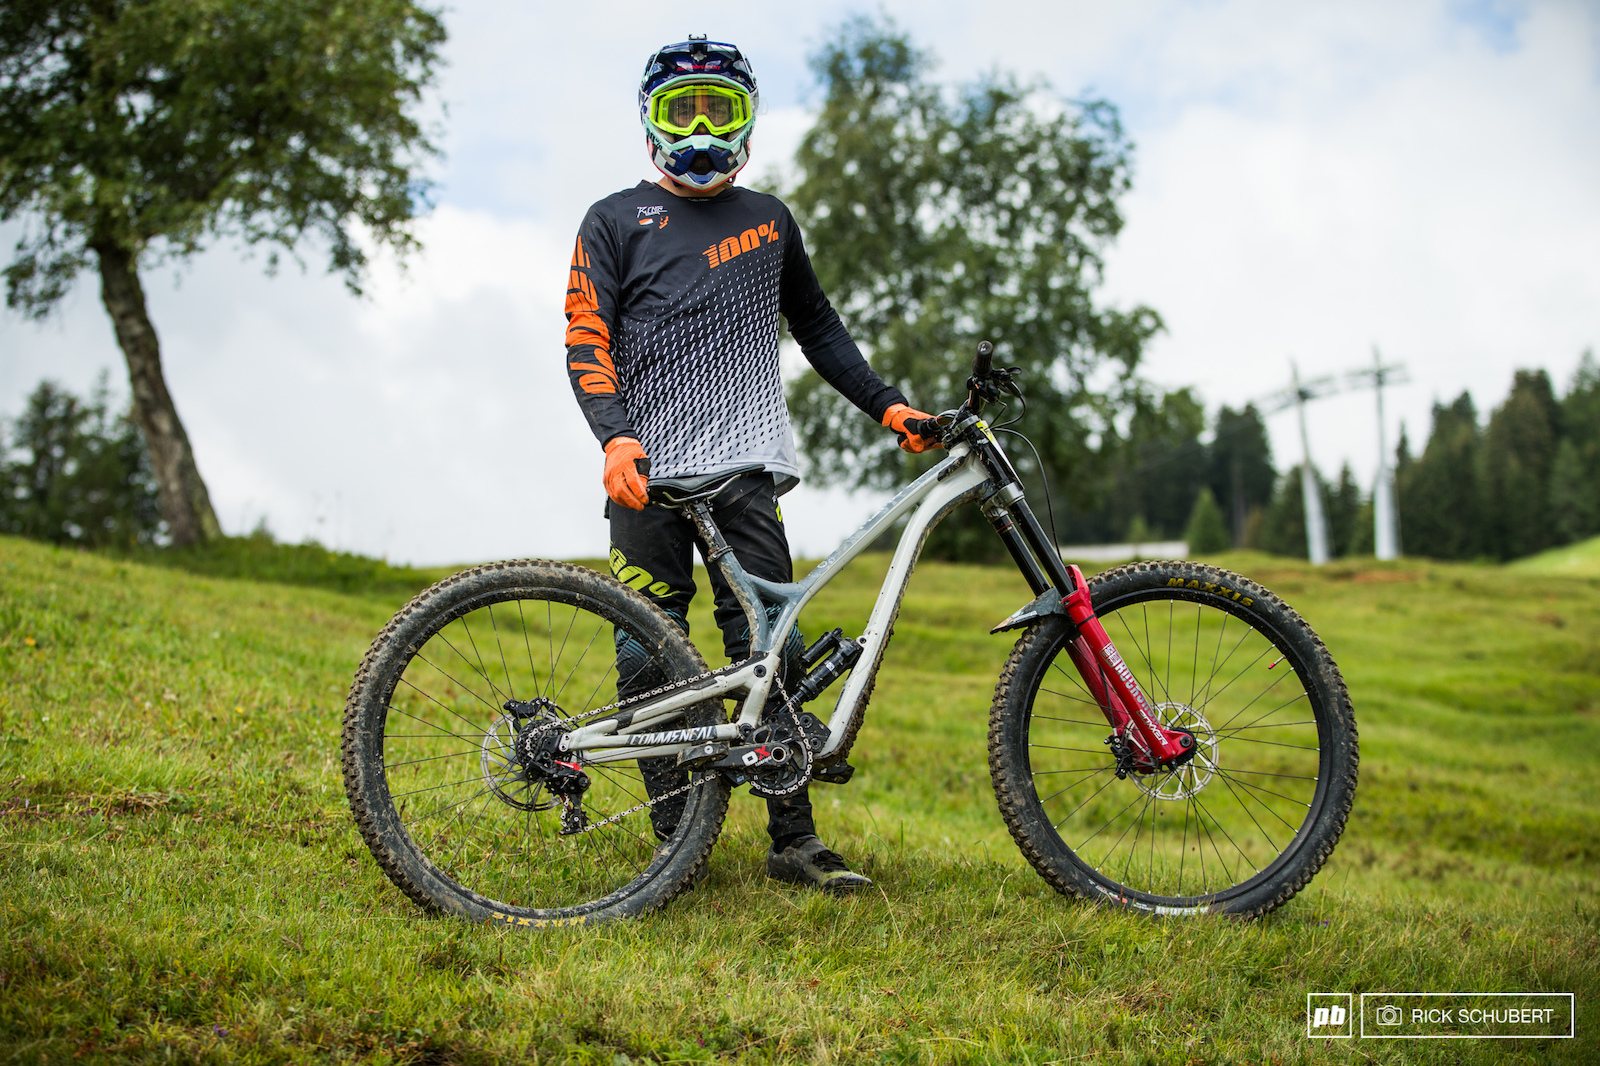 Nuno Reis is two time world champ in the U17 and will debute on the world cup in 2020